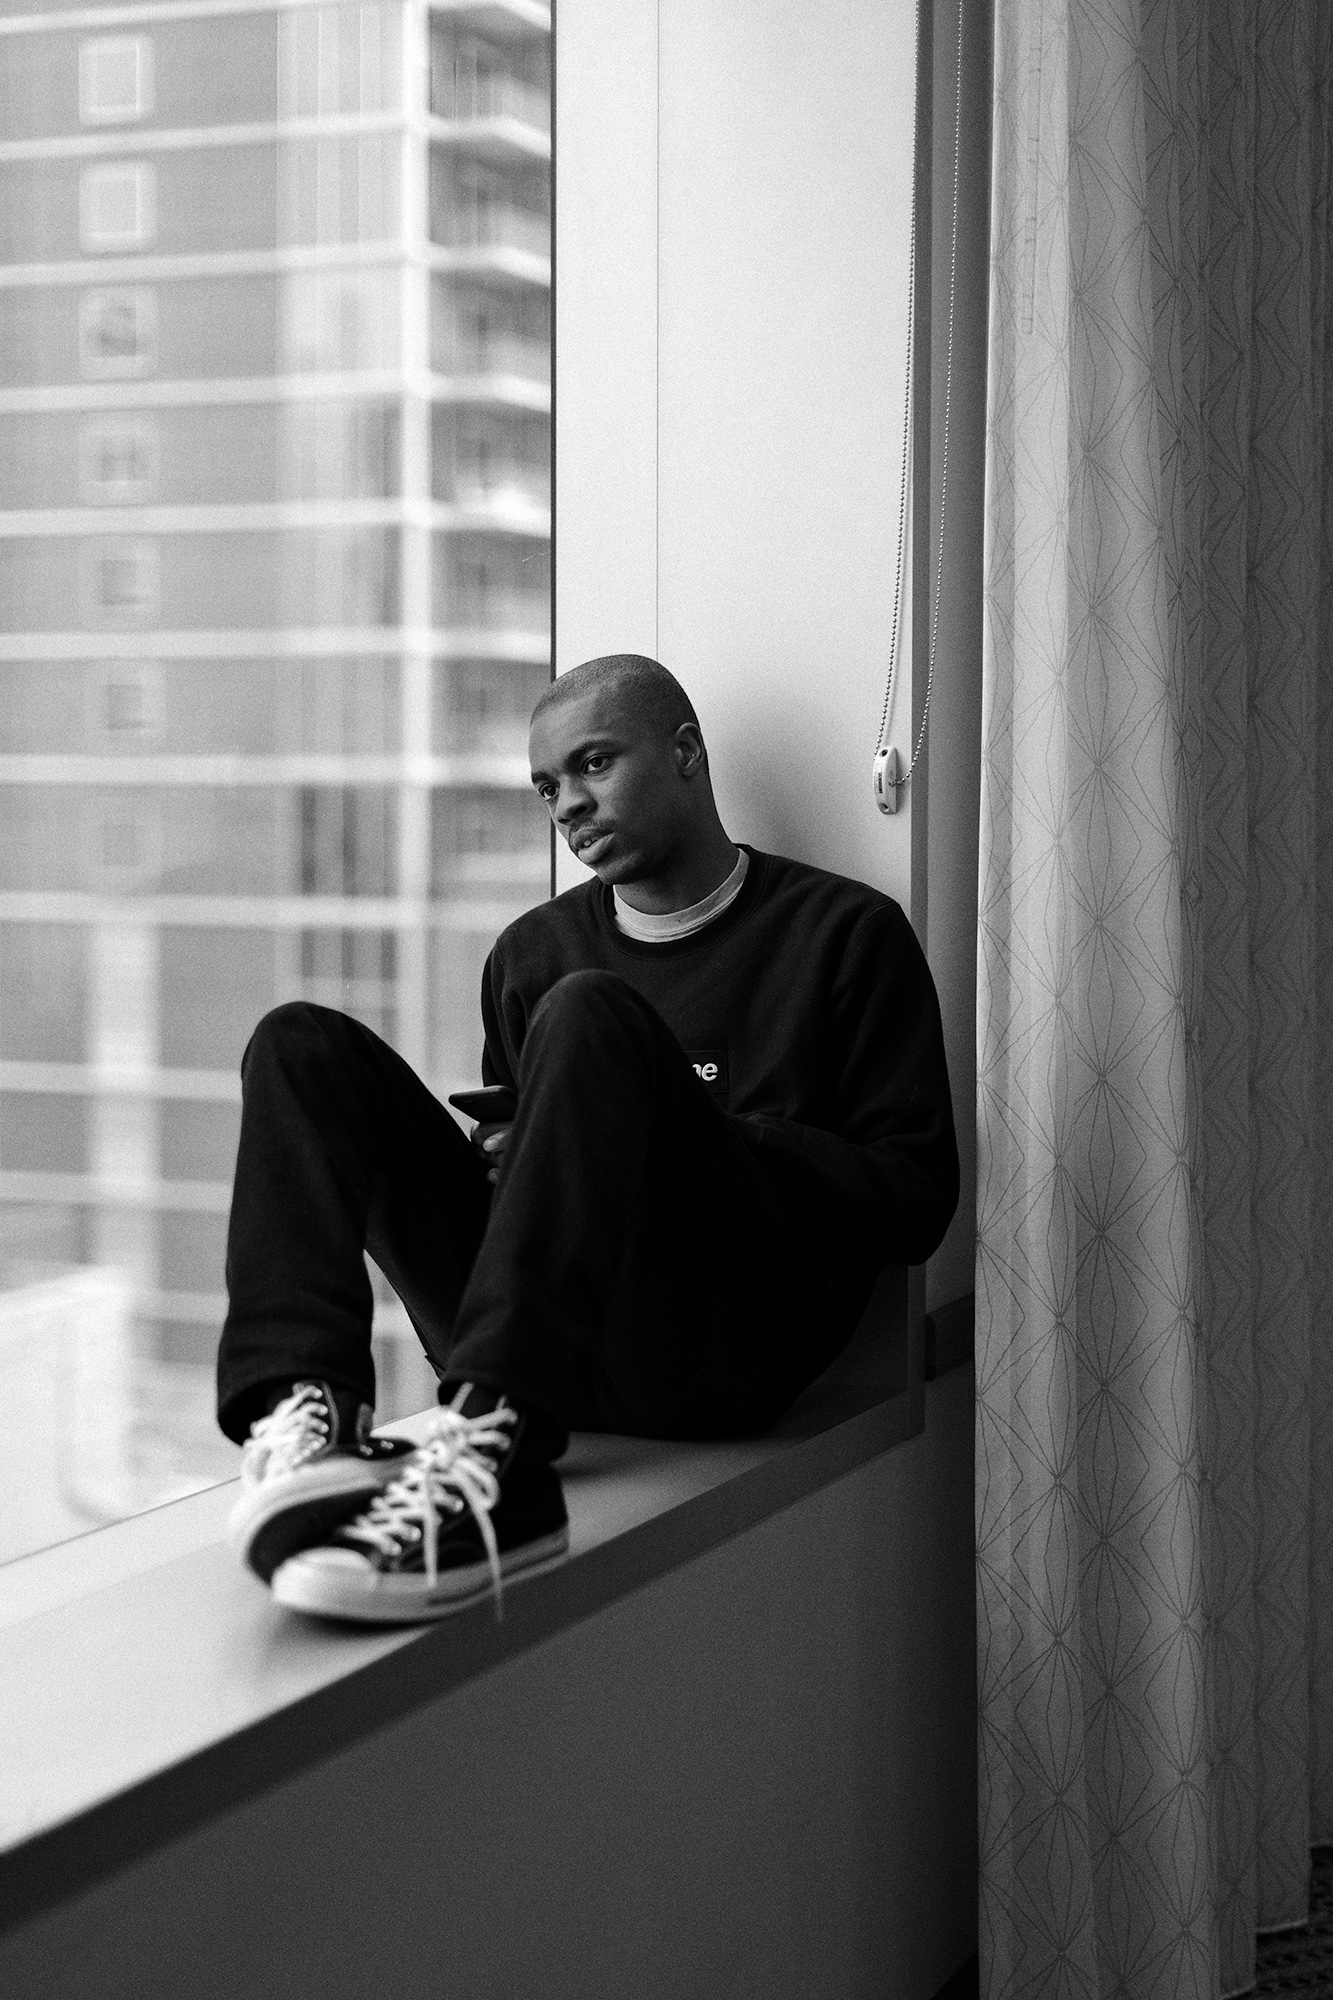 Vince Staples, hip hop artist, takes a break backstage during the South by Southwest music festival in Austin, Texas, photographed for Billboard Magazine by Todd Spoth.